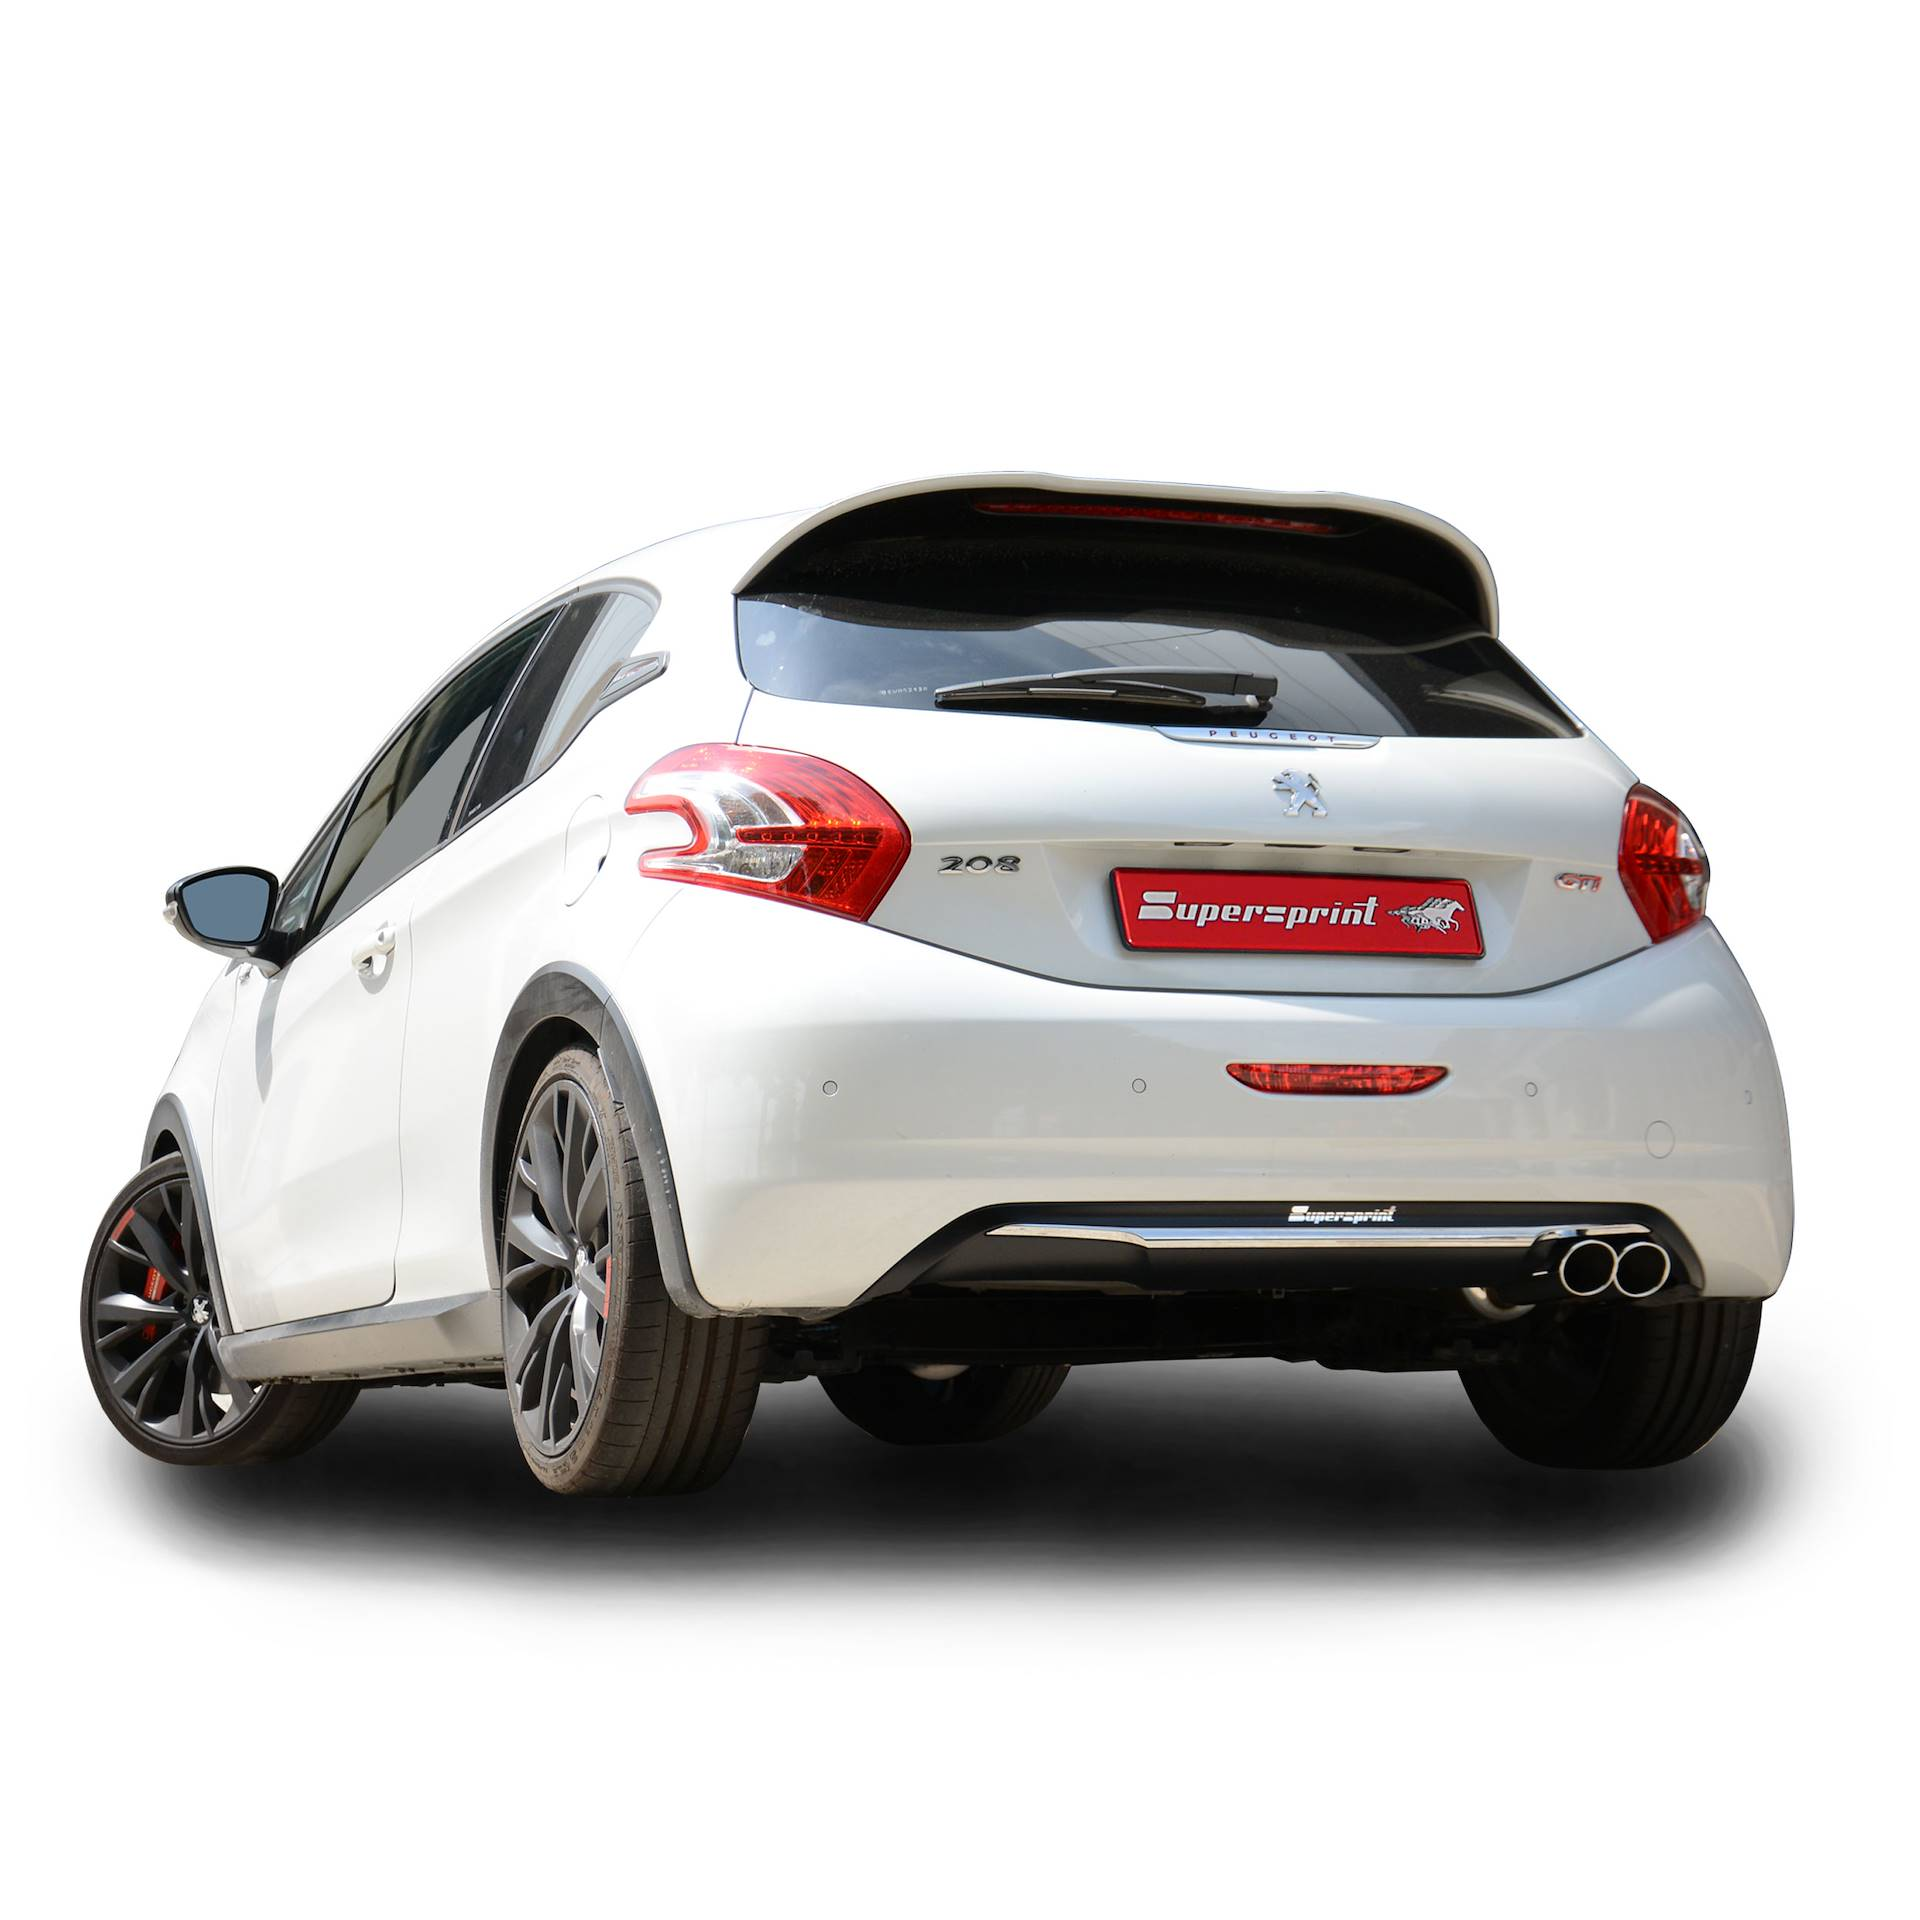 performance sport exhaust for 208 gti 30th anniversary peugeot 208 gti 30th 16v 208 hp. Black Bedroom Furniture Sets. Home Design Ideas